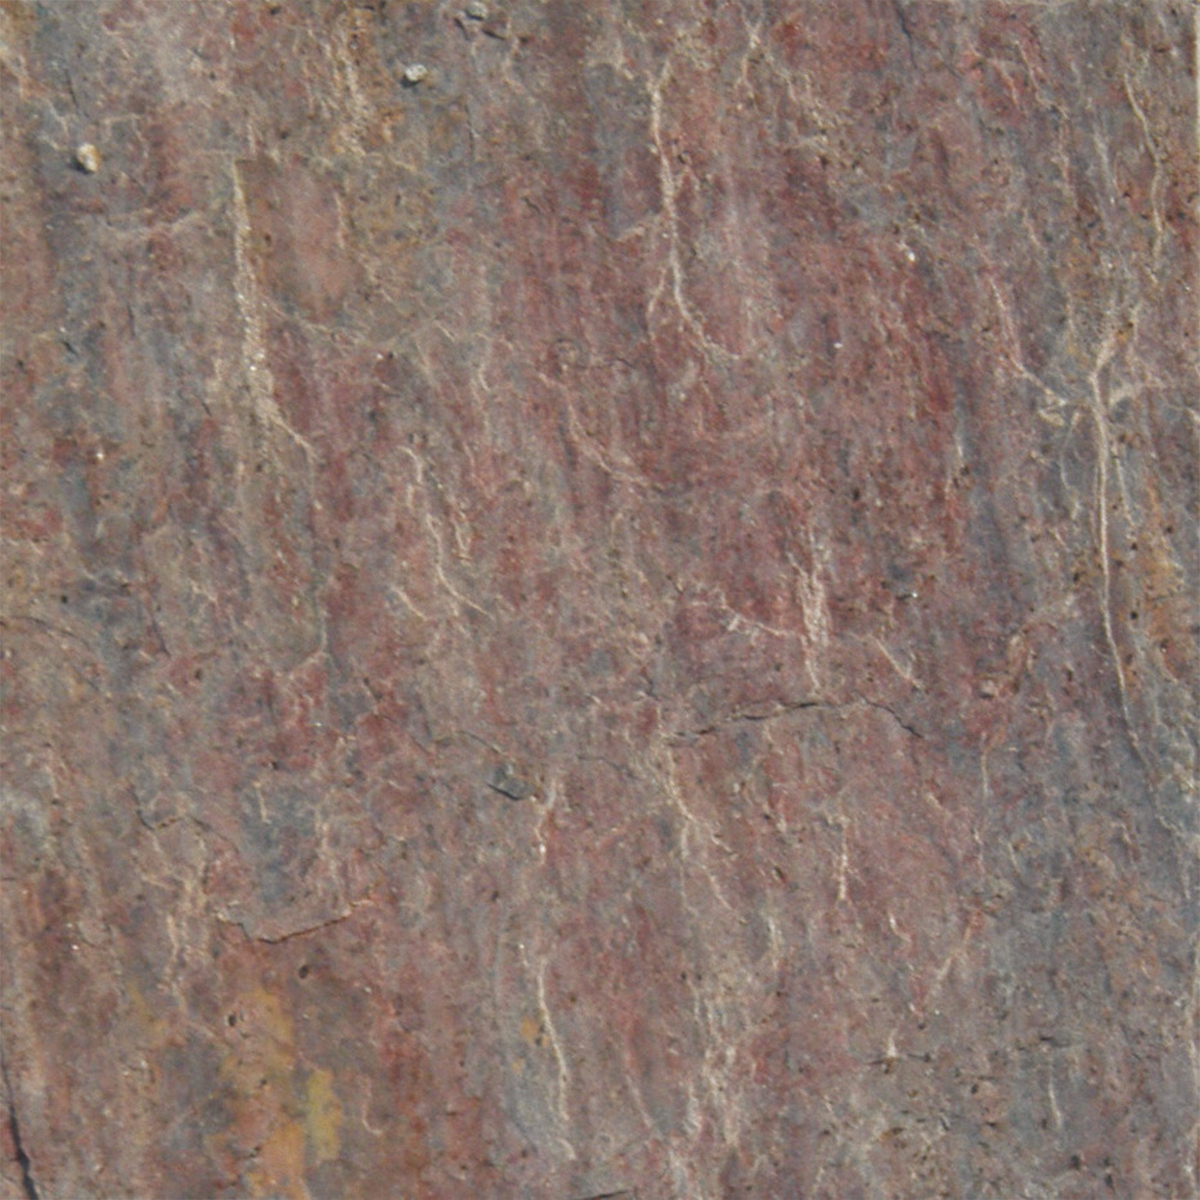 Reddish gray natural stone bathroom tile from Wayfair photo